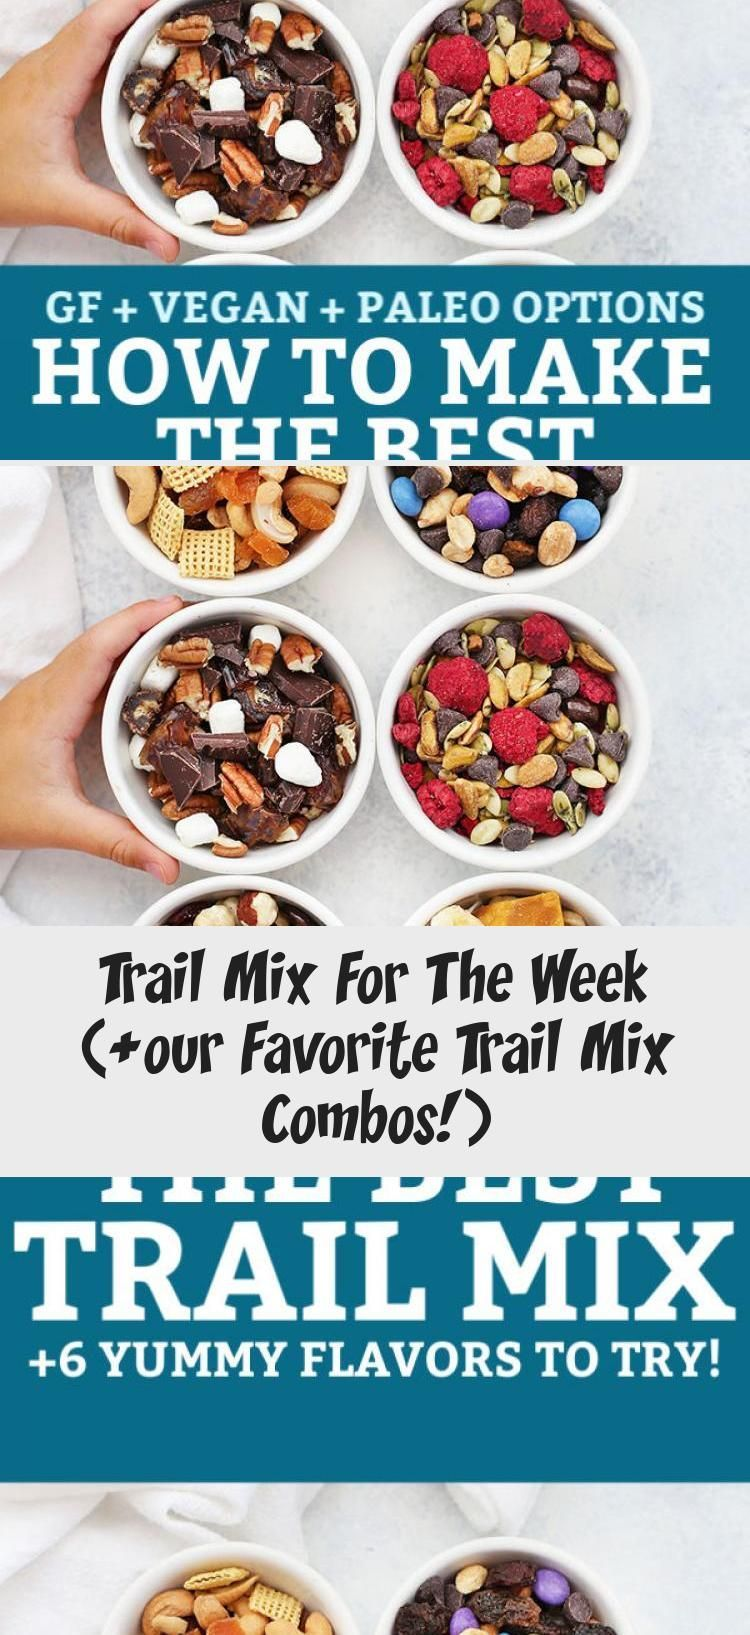 How to Make the BEST Trail Mix - Try this DIY  Trail Mix Bar to make a week of healthy snacks in no time with these yummy trail mix ideas! Try our favorite flavor combinations or create your own. Gluten free, vegan, paleo, and Whole30 options! // Paleo snack // Trail Mix // Gluten free snack //... #bar #diy #mix #studentenfutter #studentenfutter rezepte #studentenfutter selber machen #trail #trail mix #trail mix bar #trail mix bar wedding #trail mix recipes #trail mix recipes for kids #Week